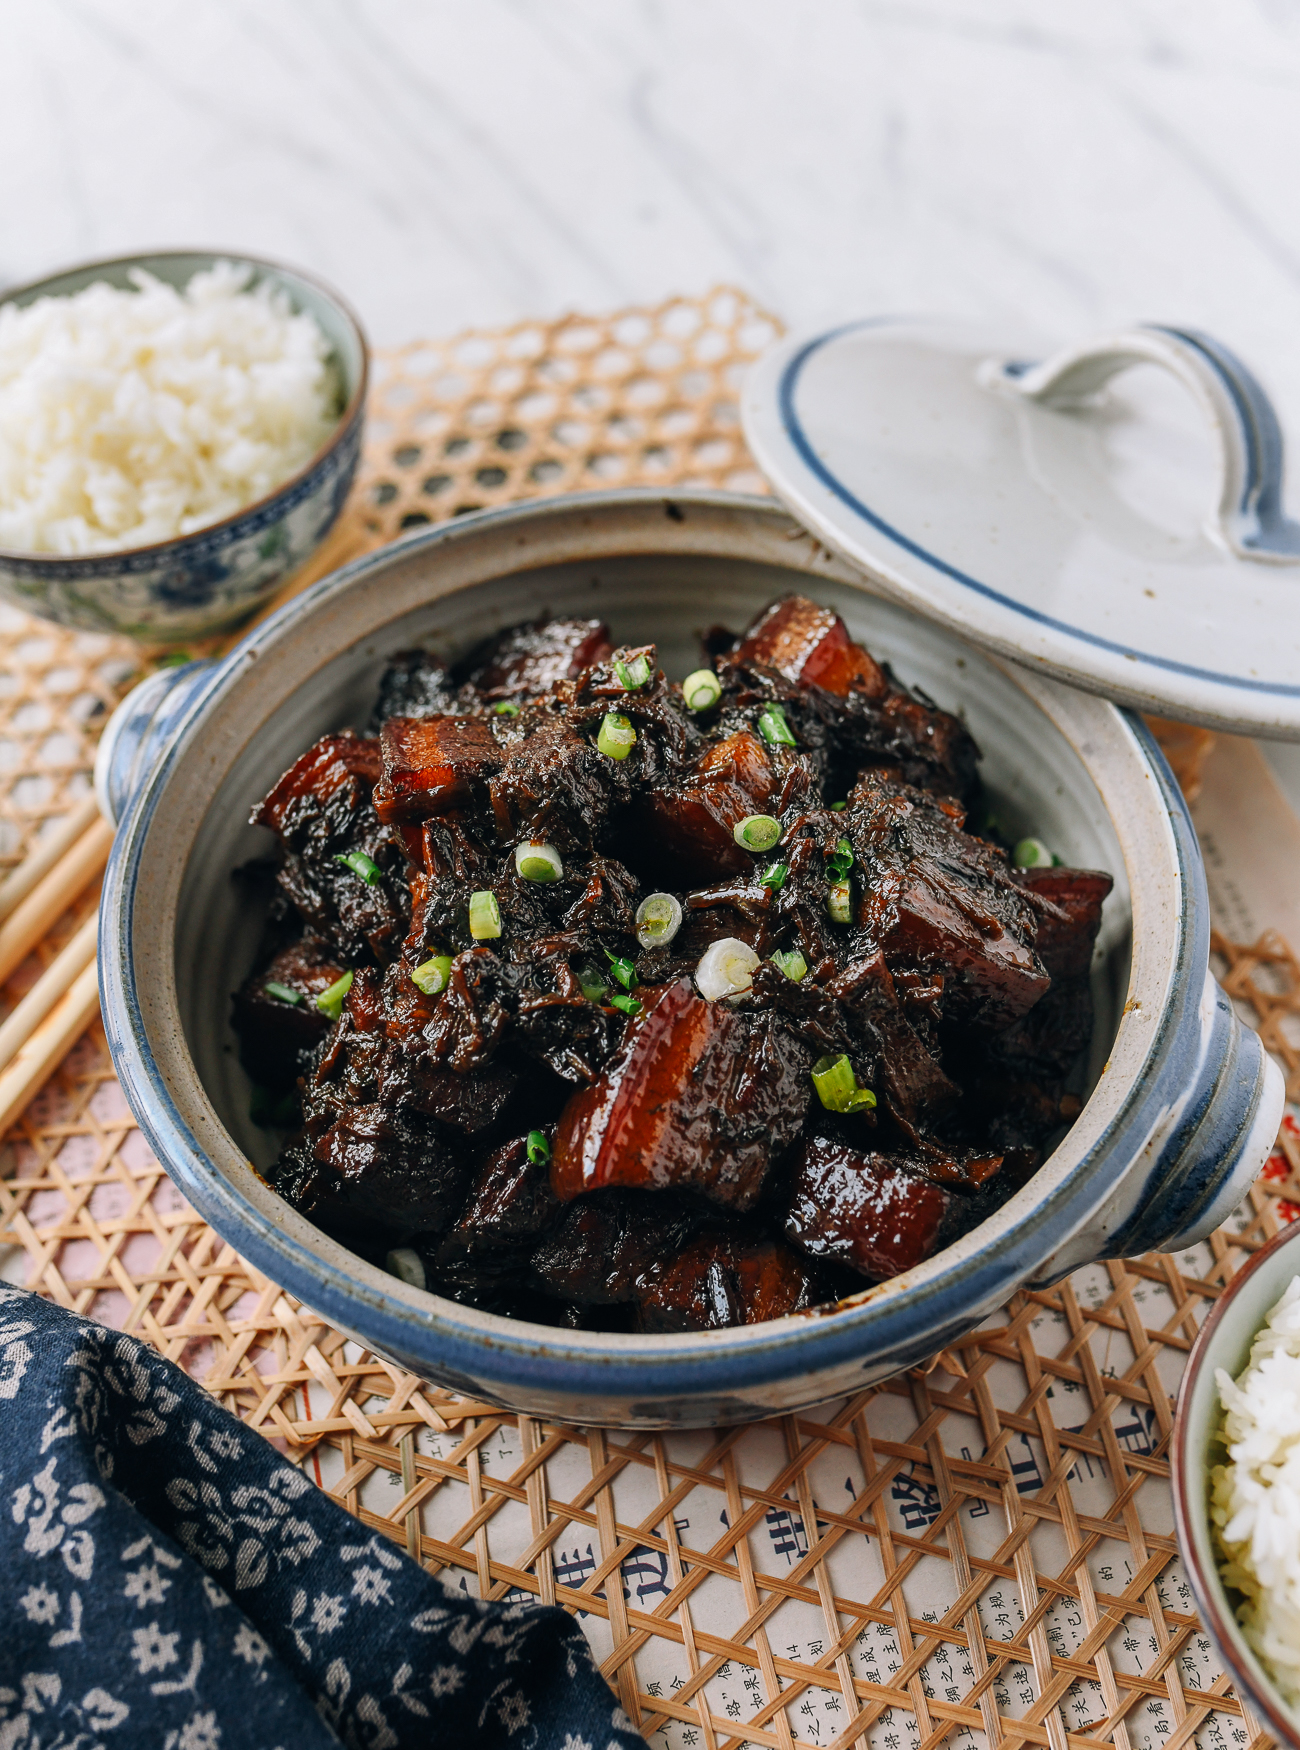 Braised Pork Belly with Meigan Cai (梅干菜)